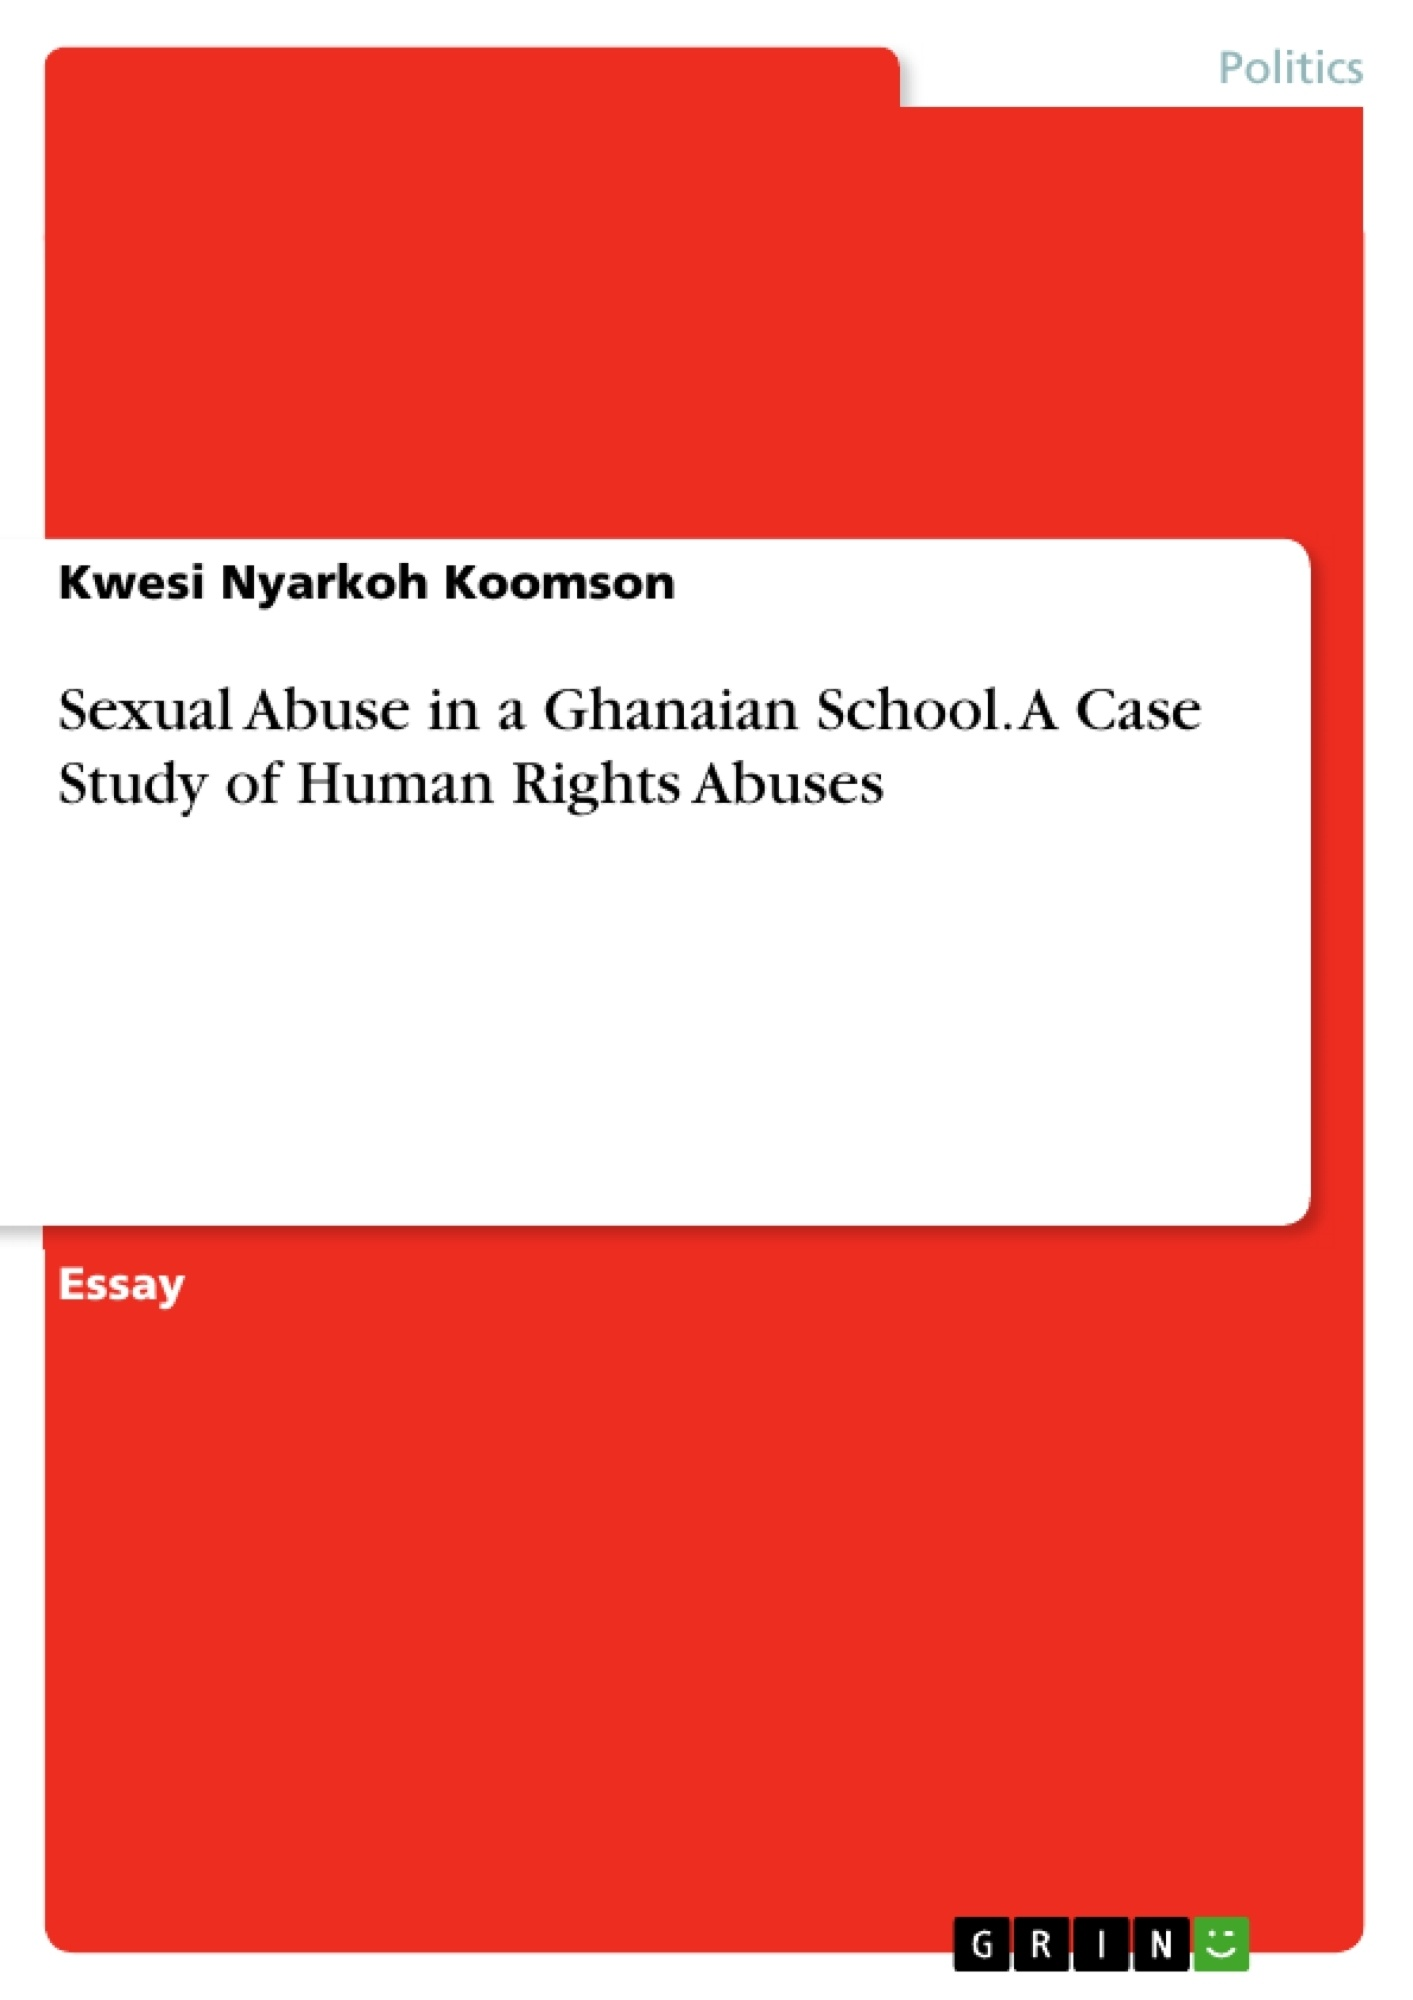 Title: Sexual Abuse in a Ghanaian School. A Case Study of Human Rights Abuses